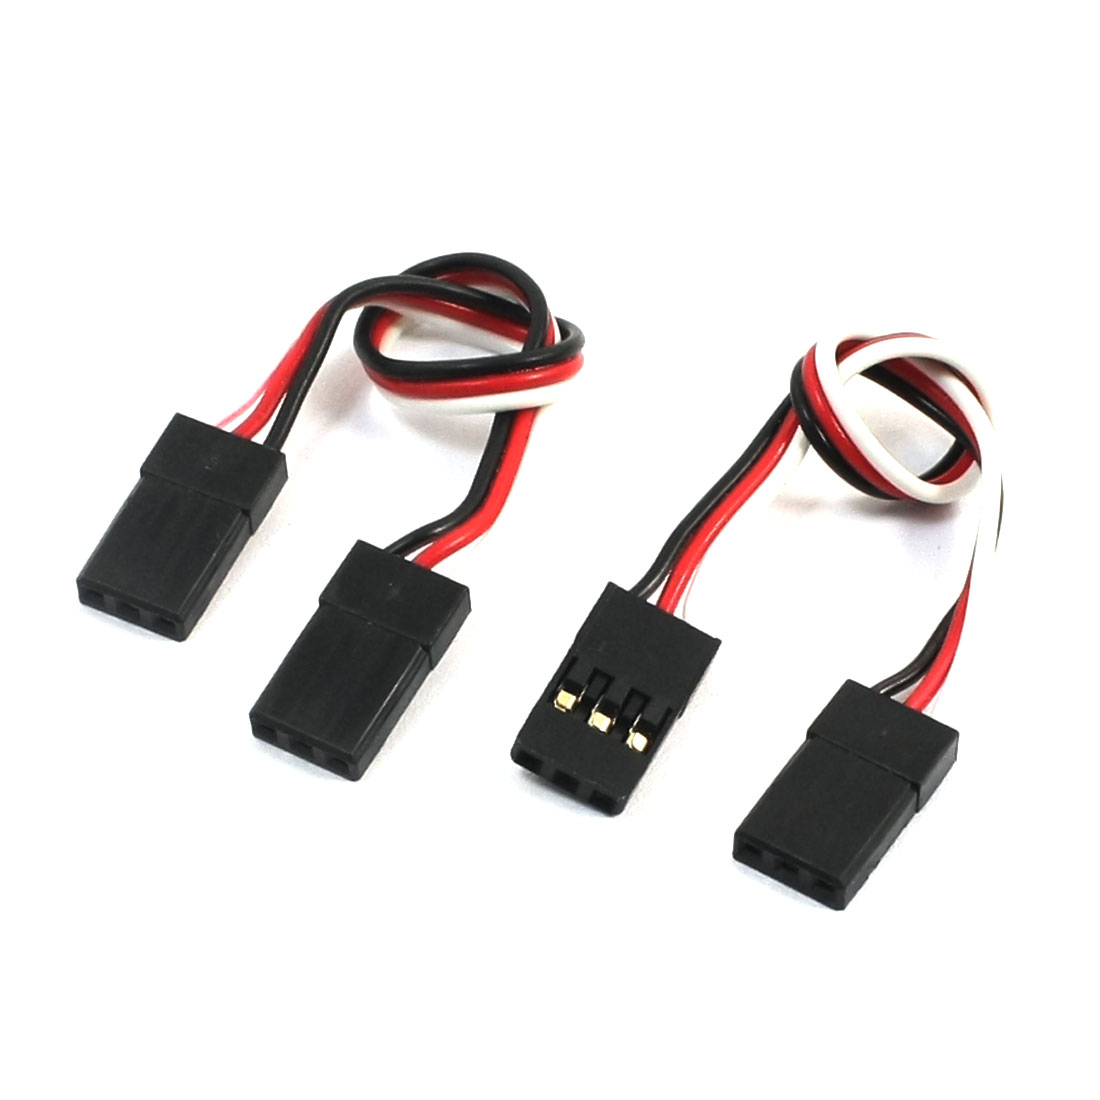 2Pcs Male to Male J Connector Servo Extension Lead Wire Cable for RC Air Plane 100mm Long